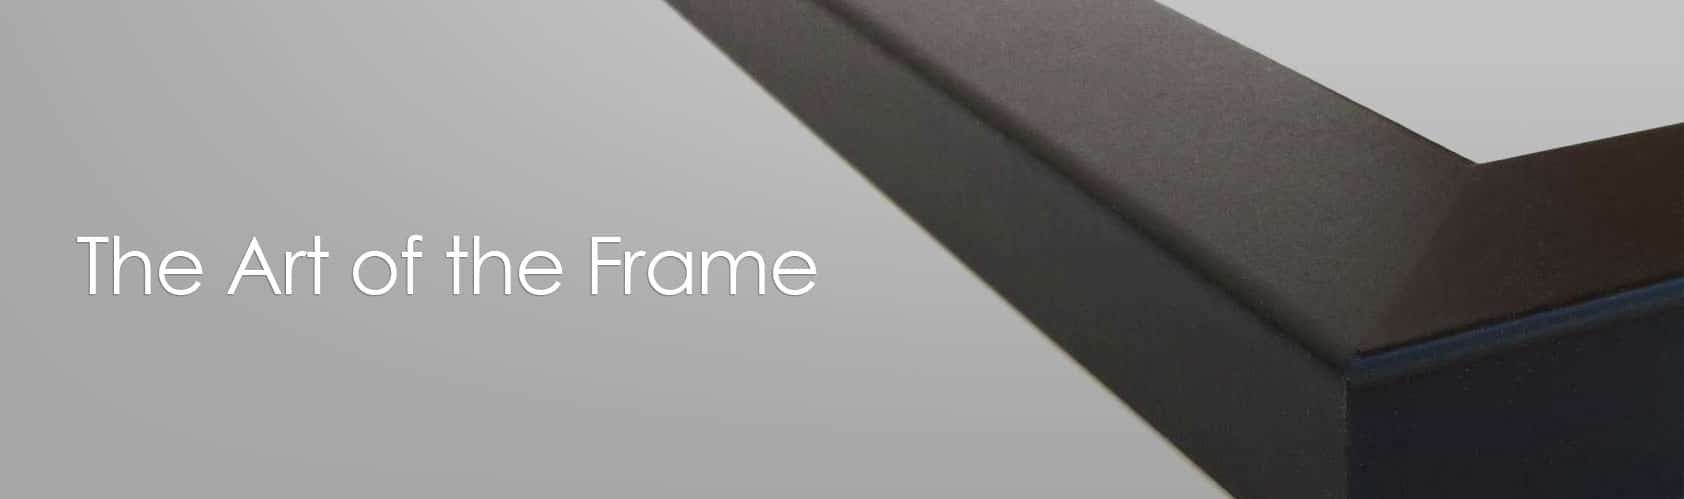 the-art-of-the-frame